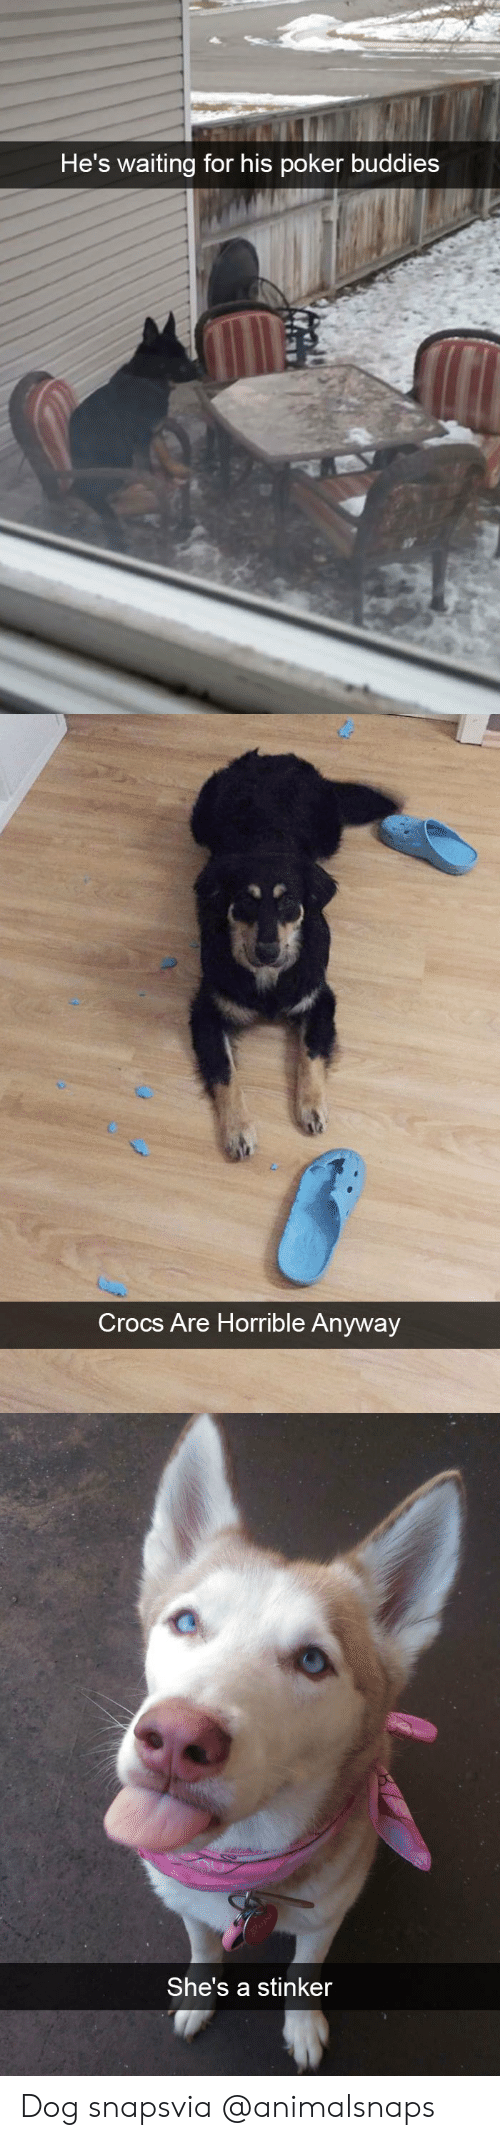 Crocs, Target, and Tumblr: He's waiting for his poker buddies   Crocs Are Horrble Anyway   She's a stinker Dog snapsvia @animalsnaps